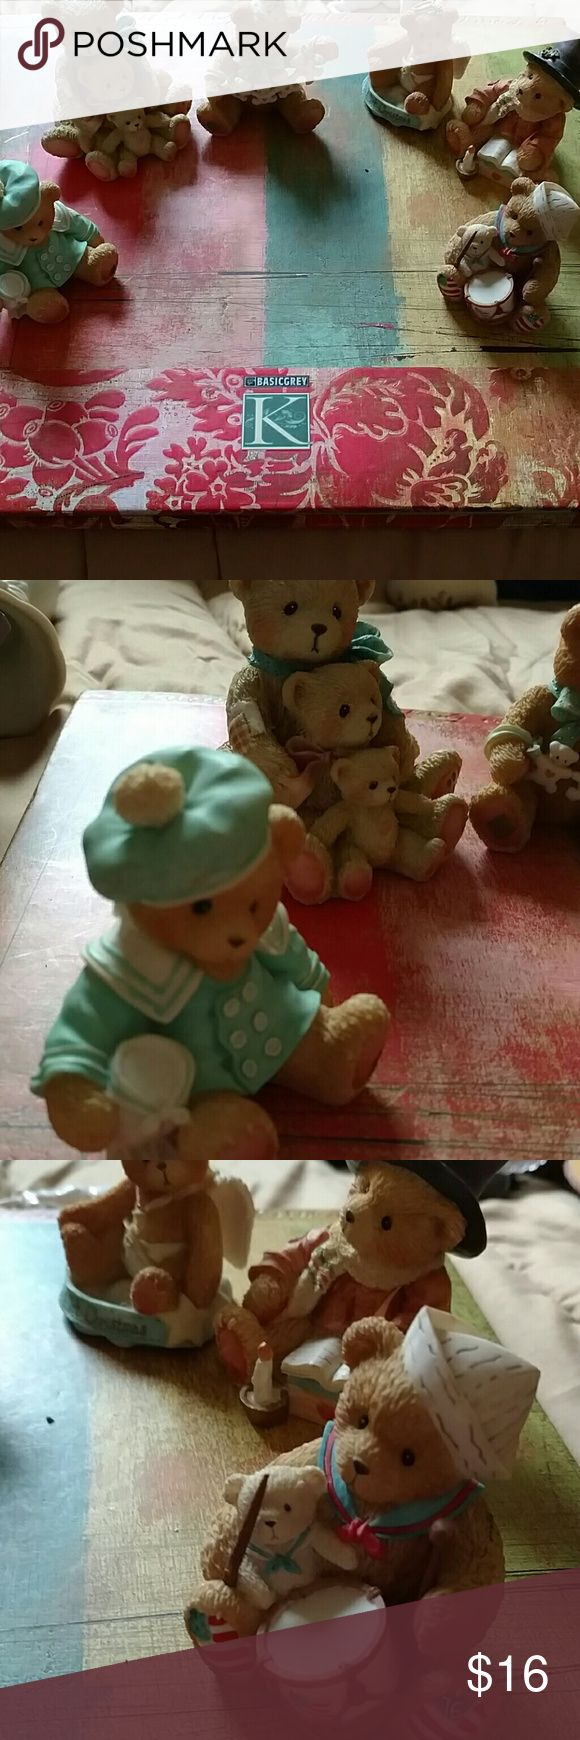 6 piece Teddy collectibles 4 in like new condition . Two of the figurines have broken please see picture number two and three her close-up. 6 piece Vintage cherished Teddy collectible figurines Other